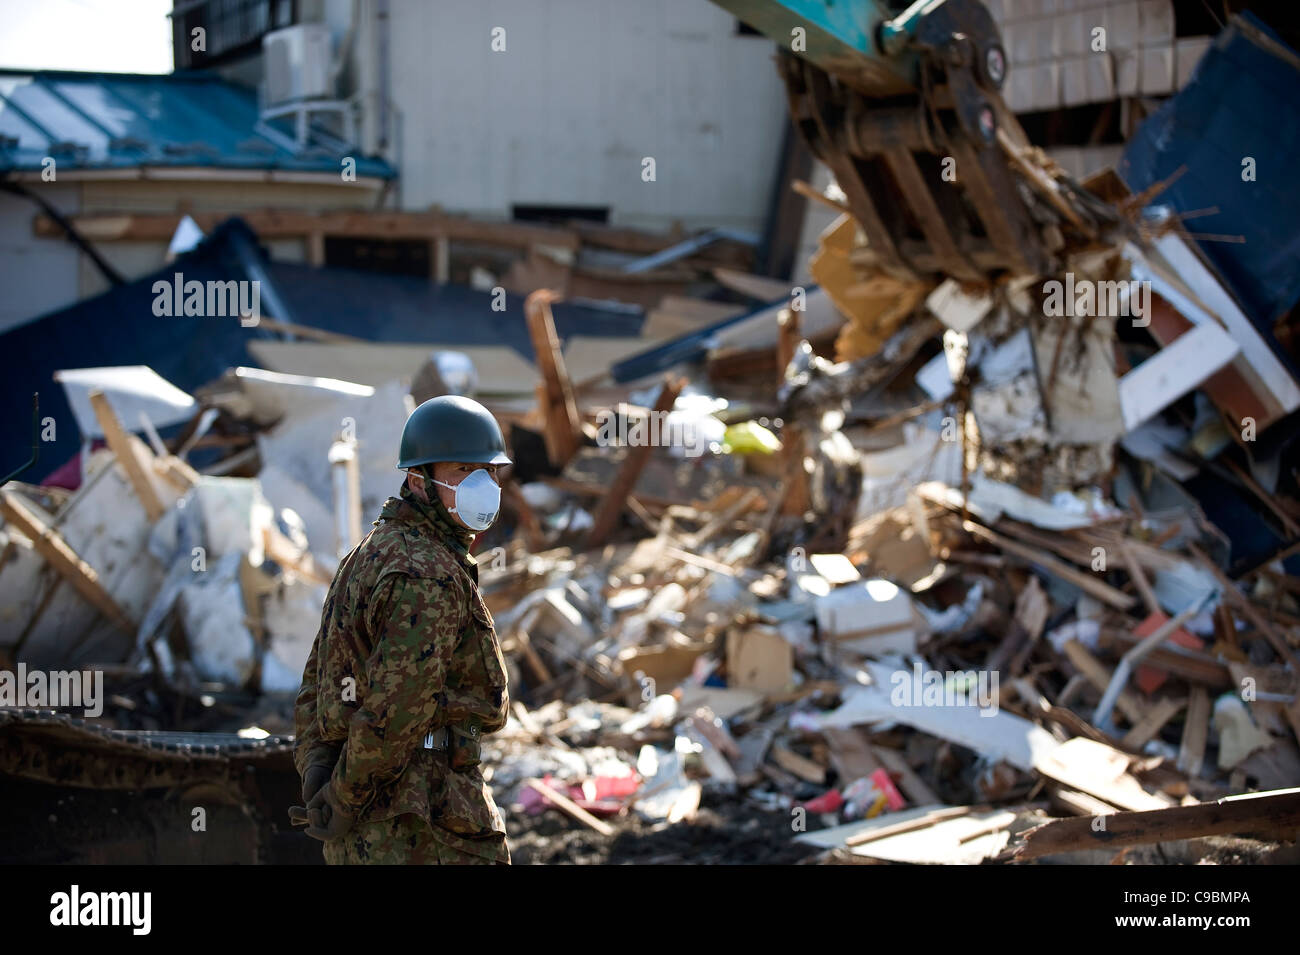 A Japan Self Defense Force member looks on as a fork lift truck clears debris from the streets in Tona, Miyagi Prefecture, - Stock Image